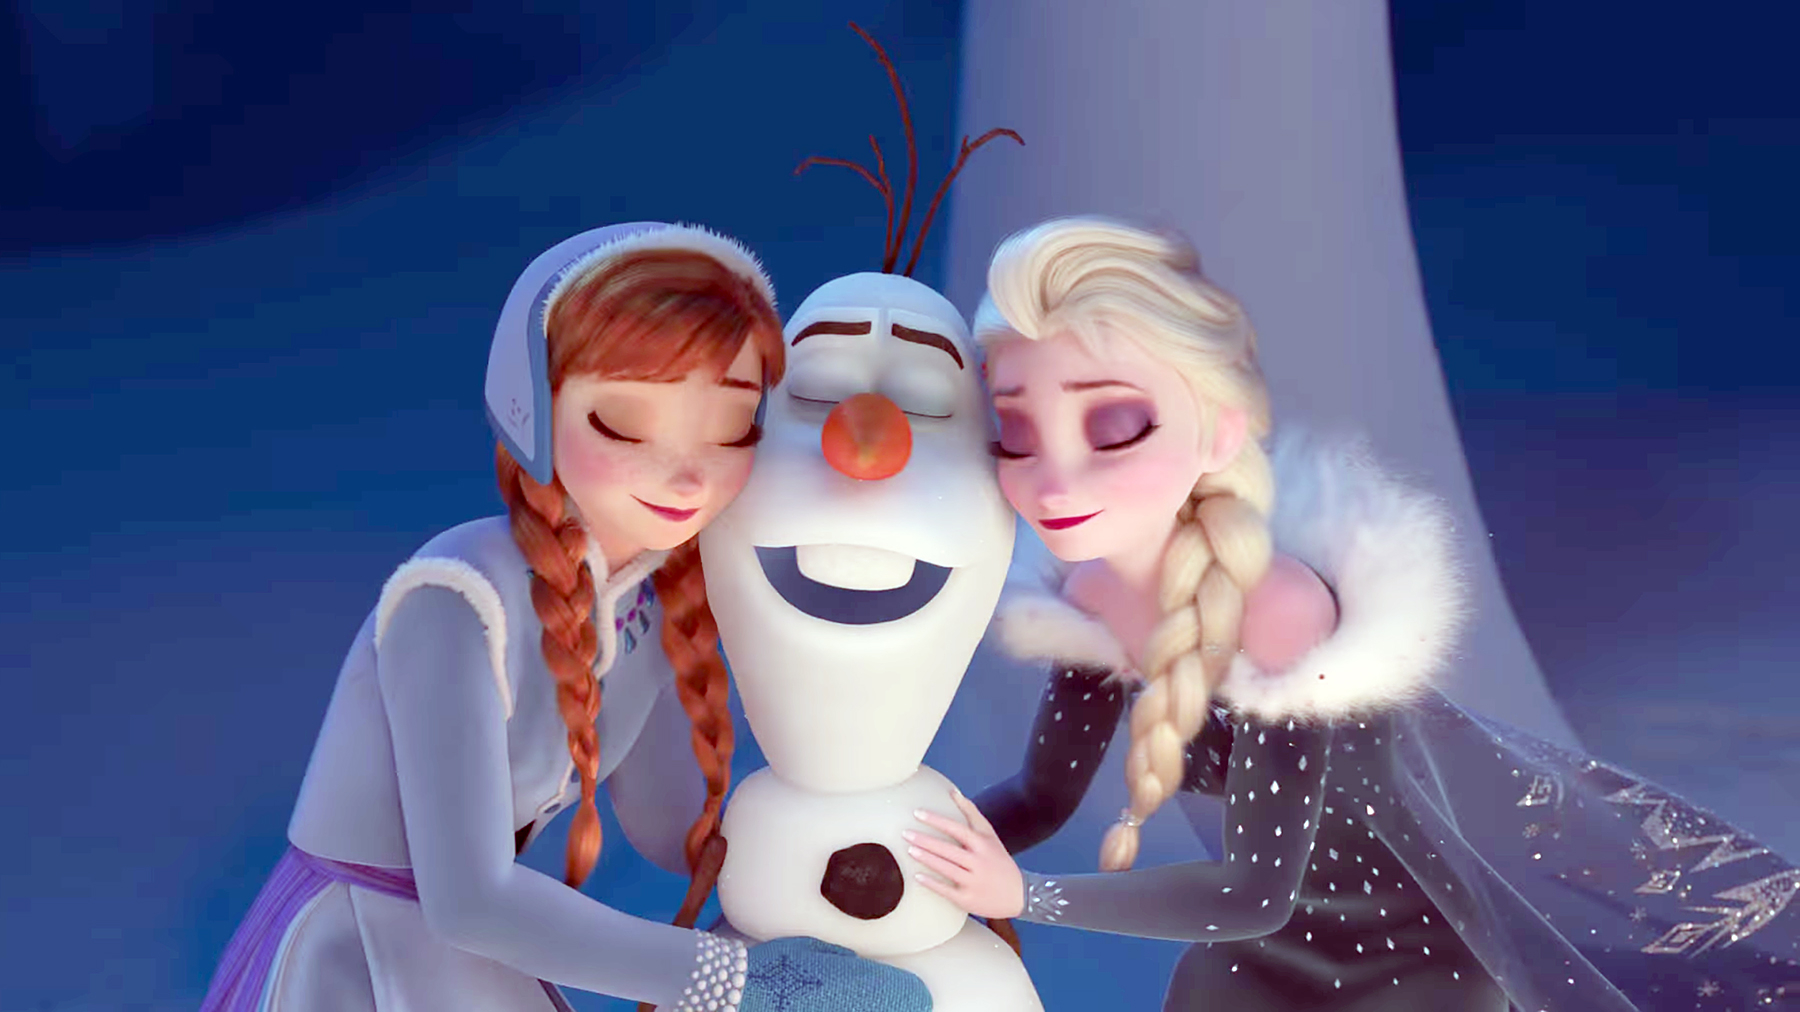 olafs frozen adventure wallpapers high quality download